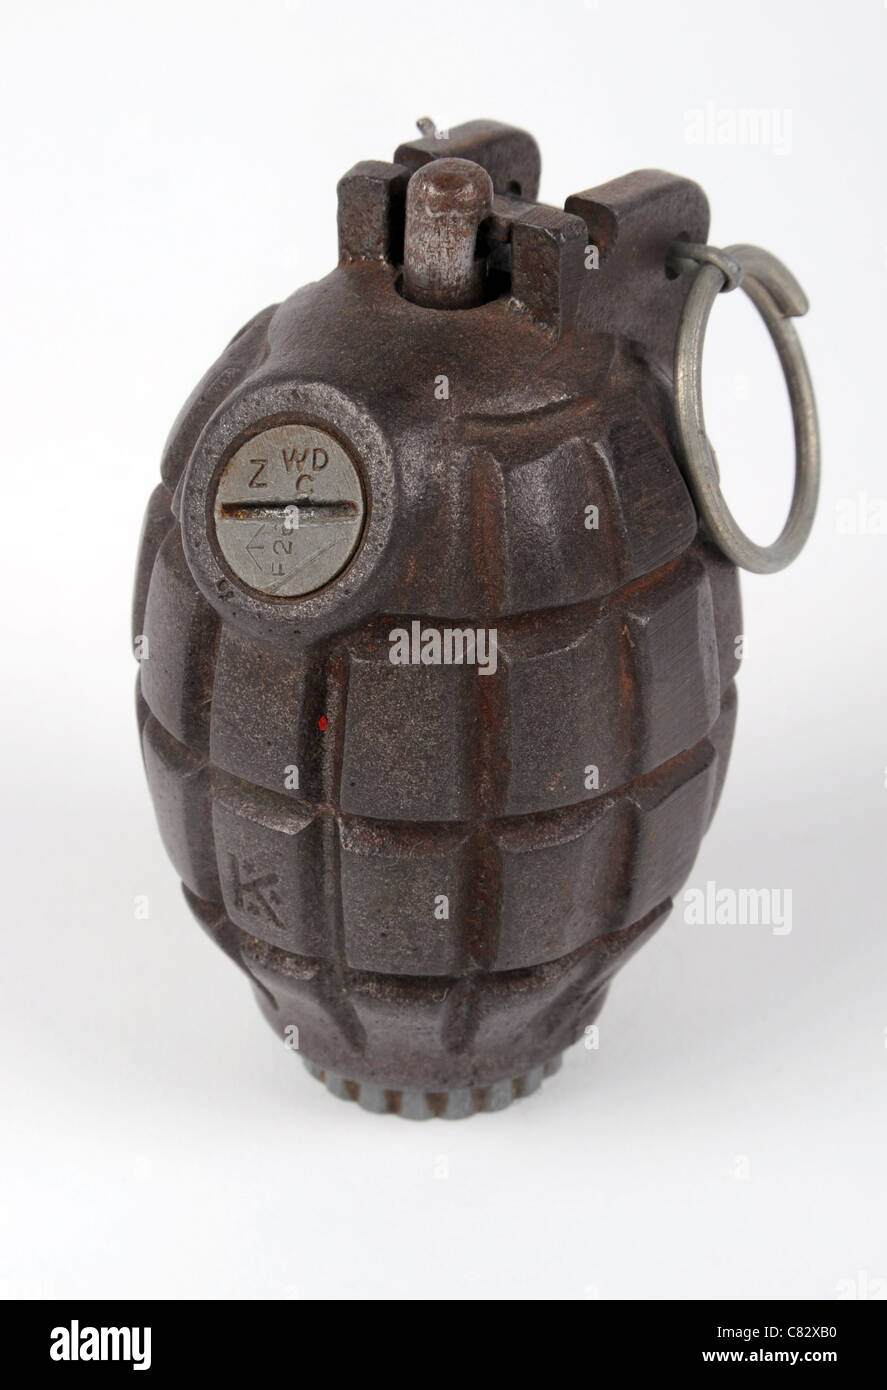 WWII British No36 Mills fragmentation defensive hand grenade. Stock Photo